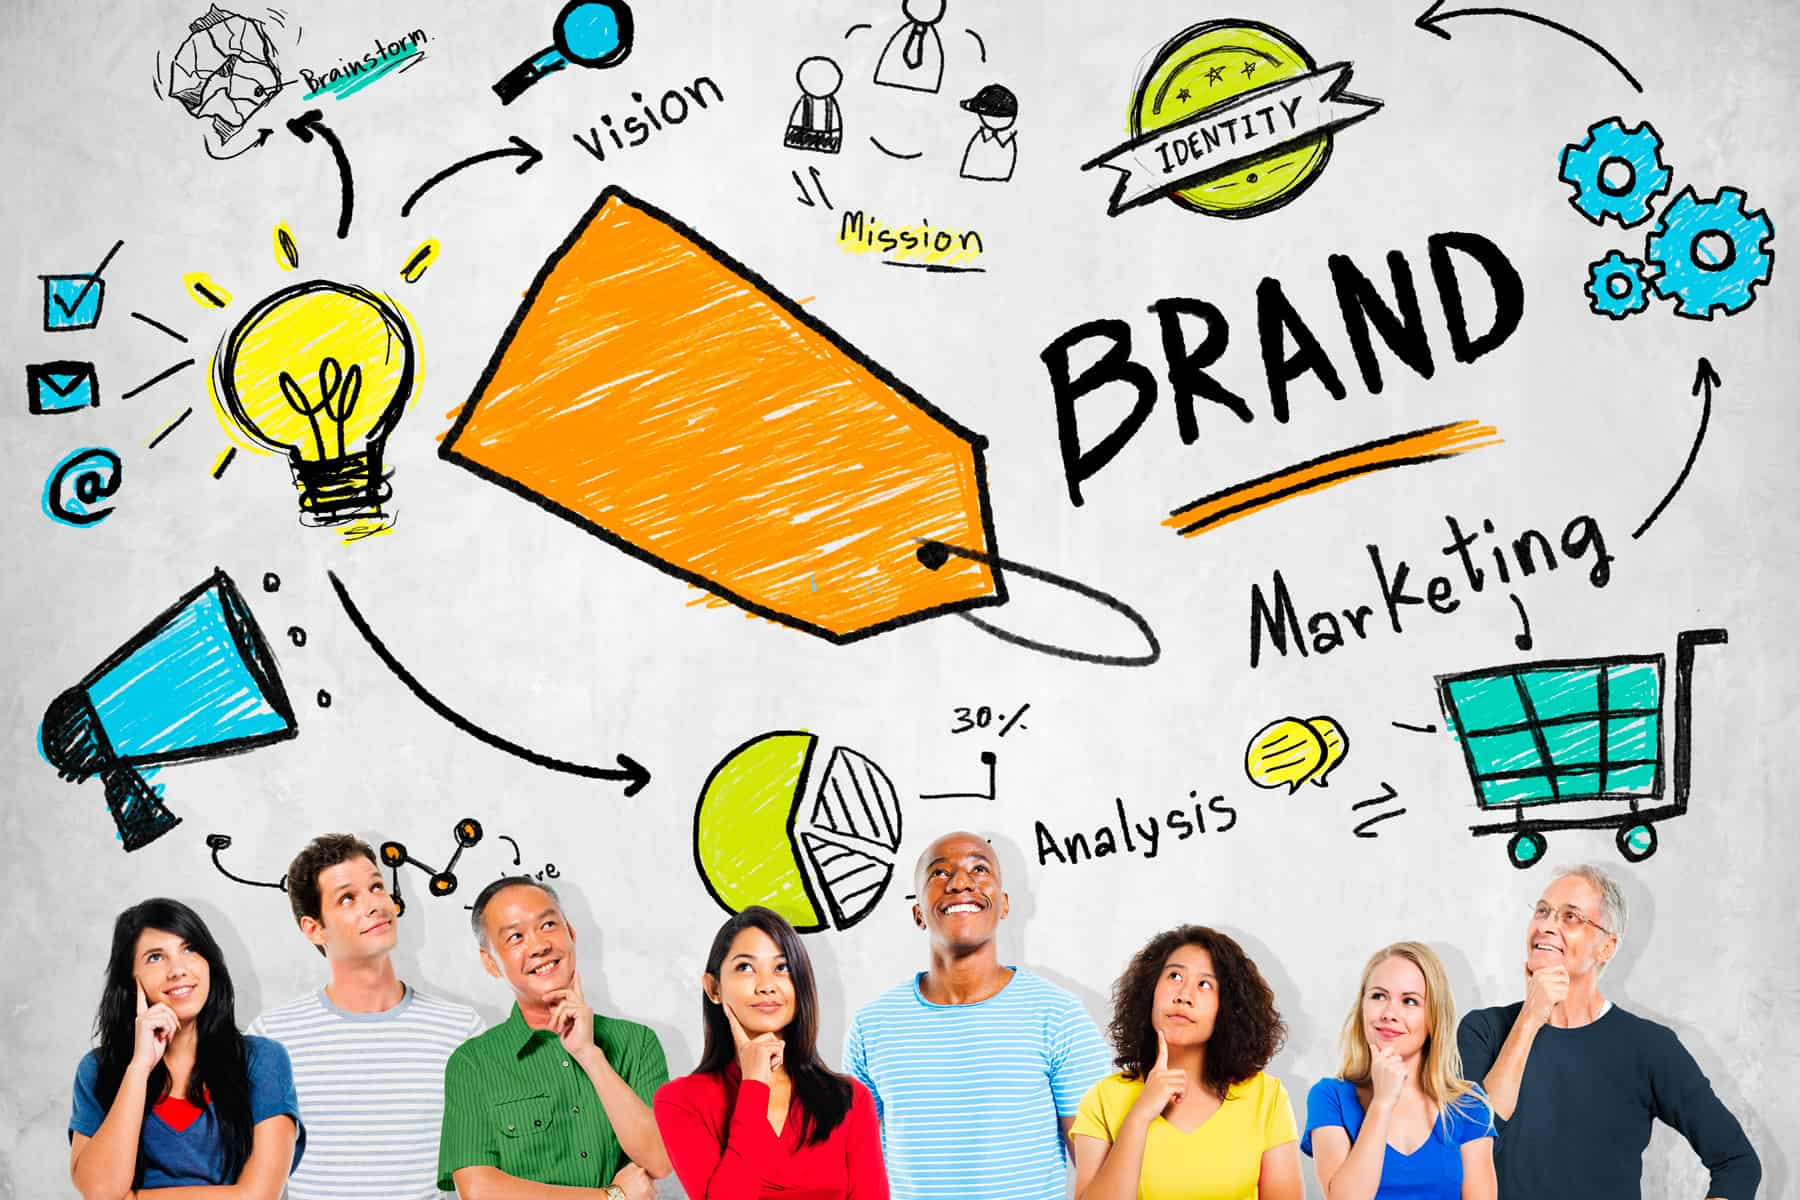 Diverse people thinking about marketing plans to grow their brands and businesses.